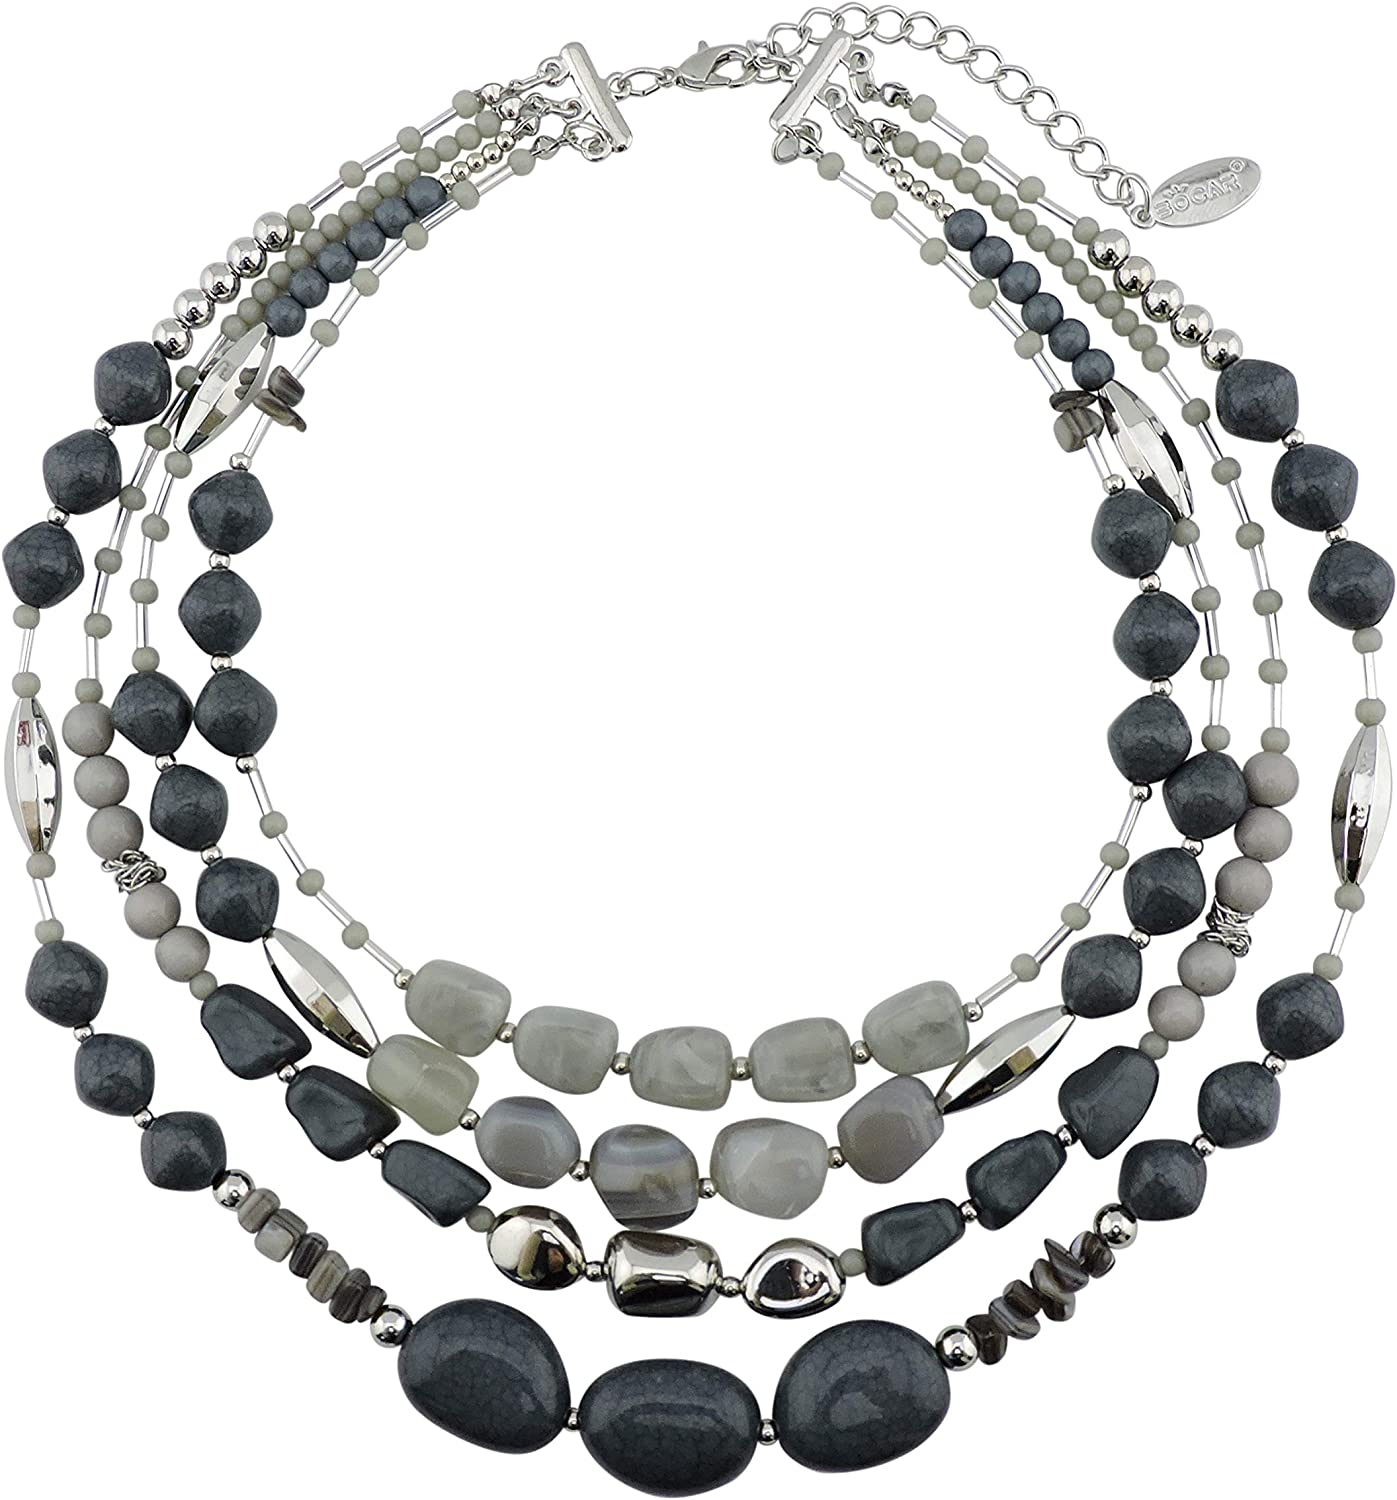 New mail order Bocar Multi Layer 4 Strand Statement Beaded Necklace 17